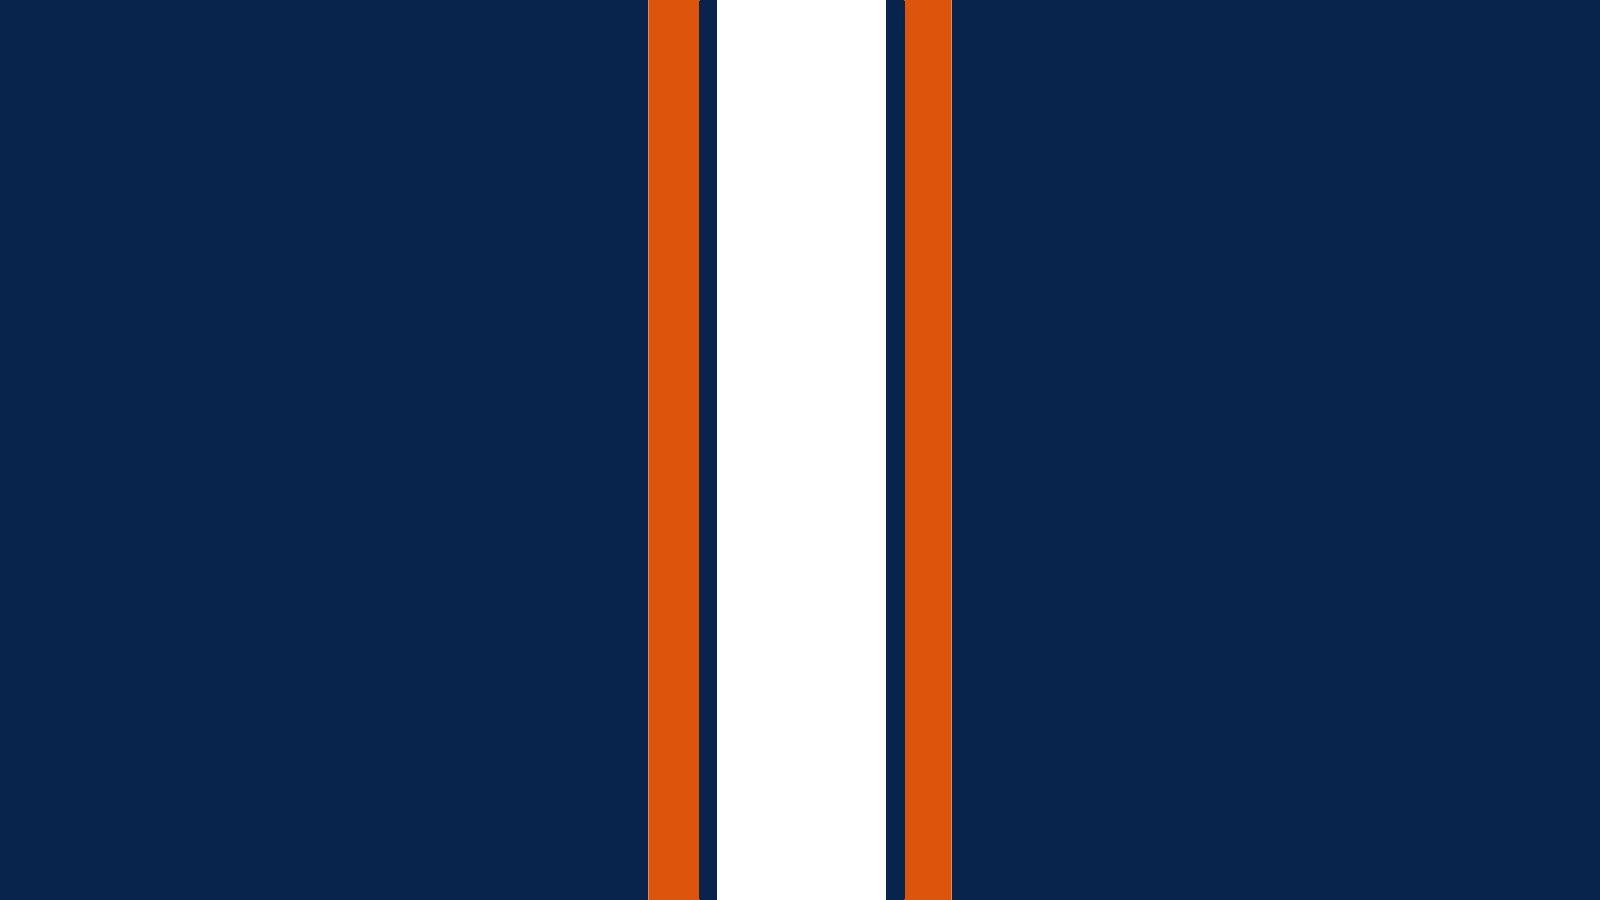 2020 Auburn Tigers Football Season Tickets (Includes Tickets To All Regular Season Home Games)